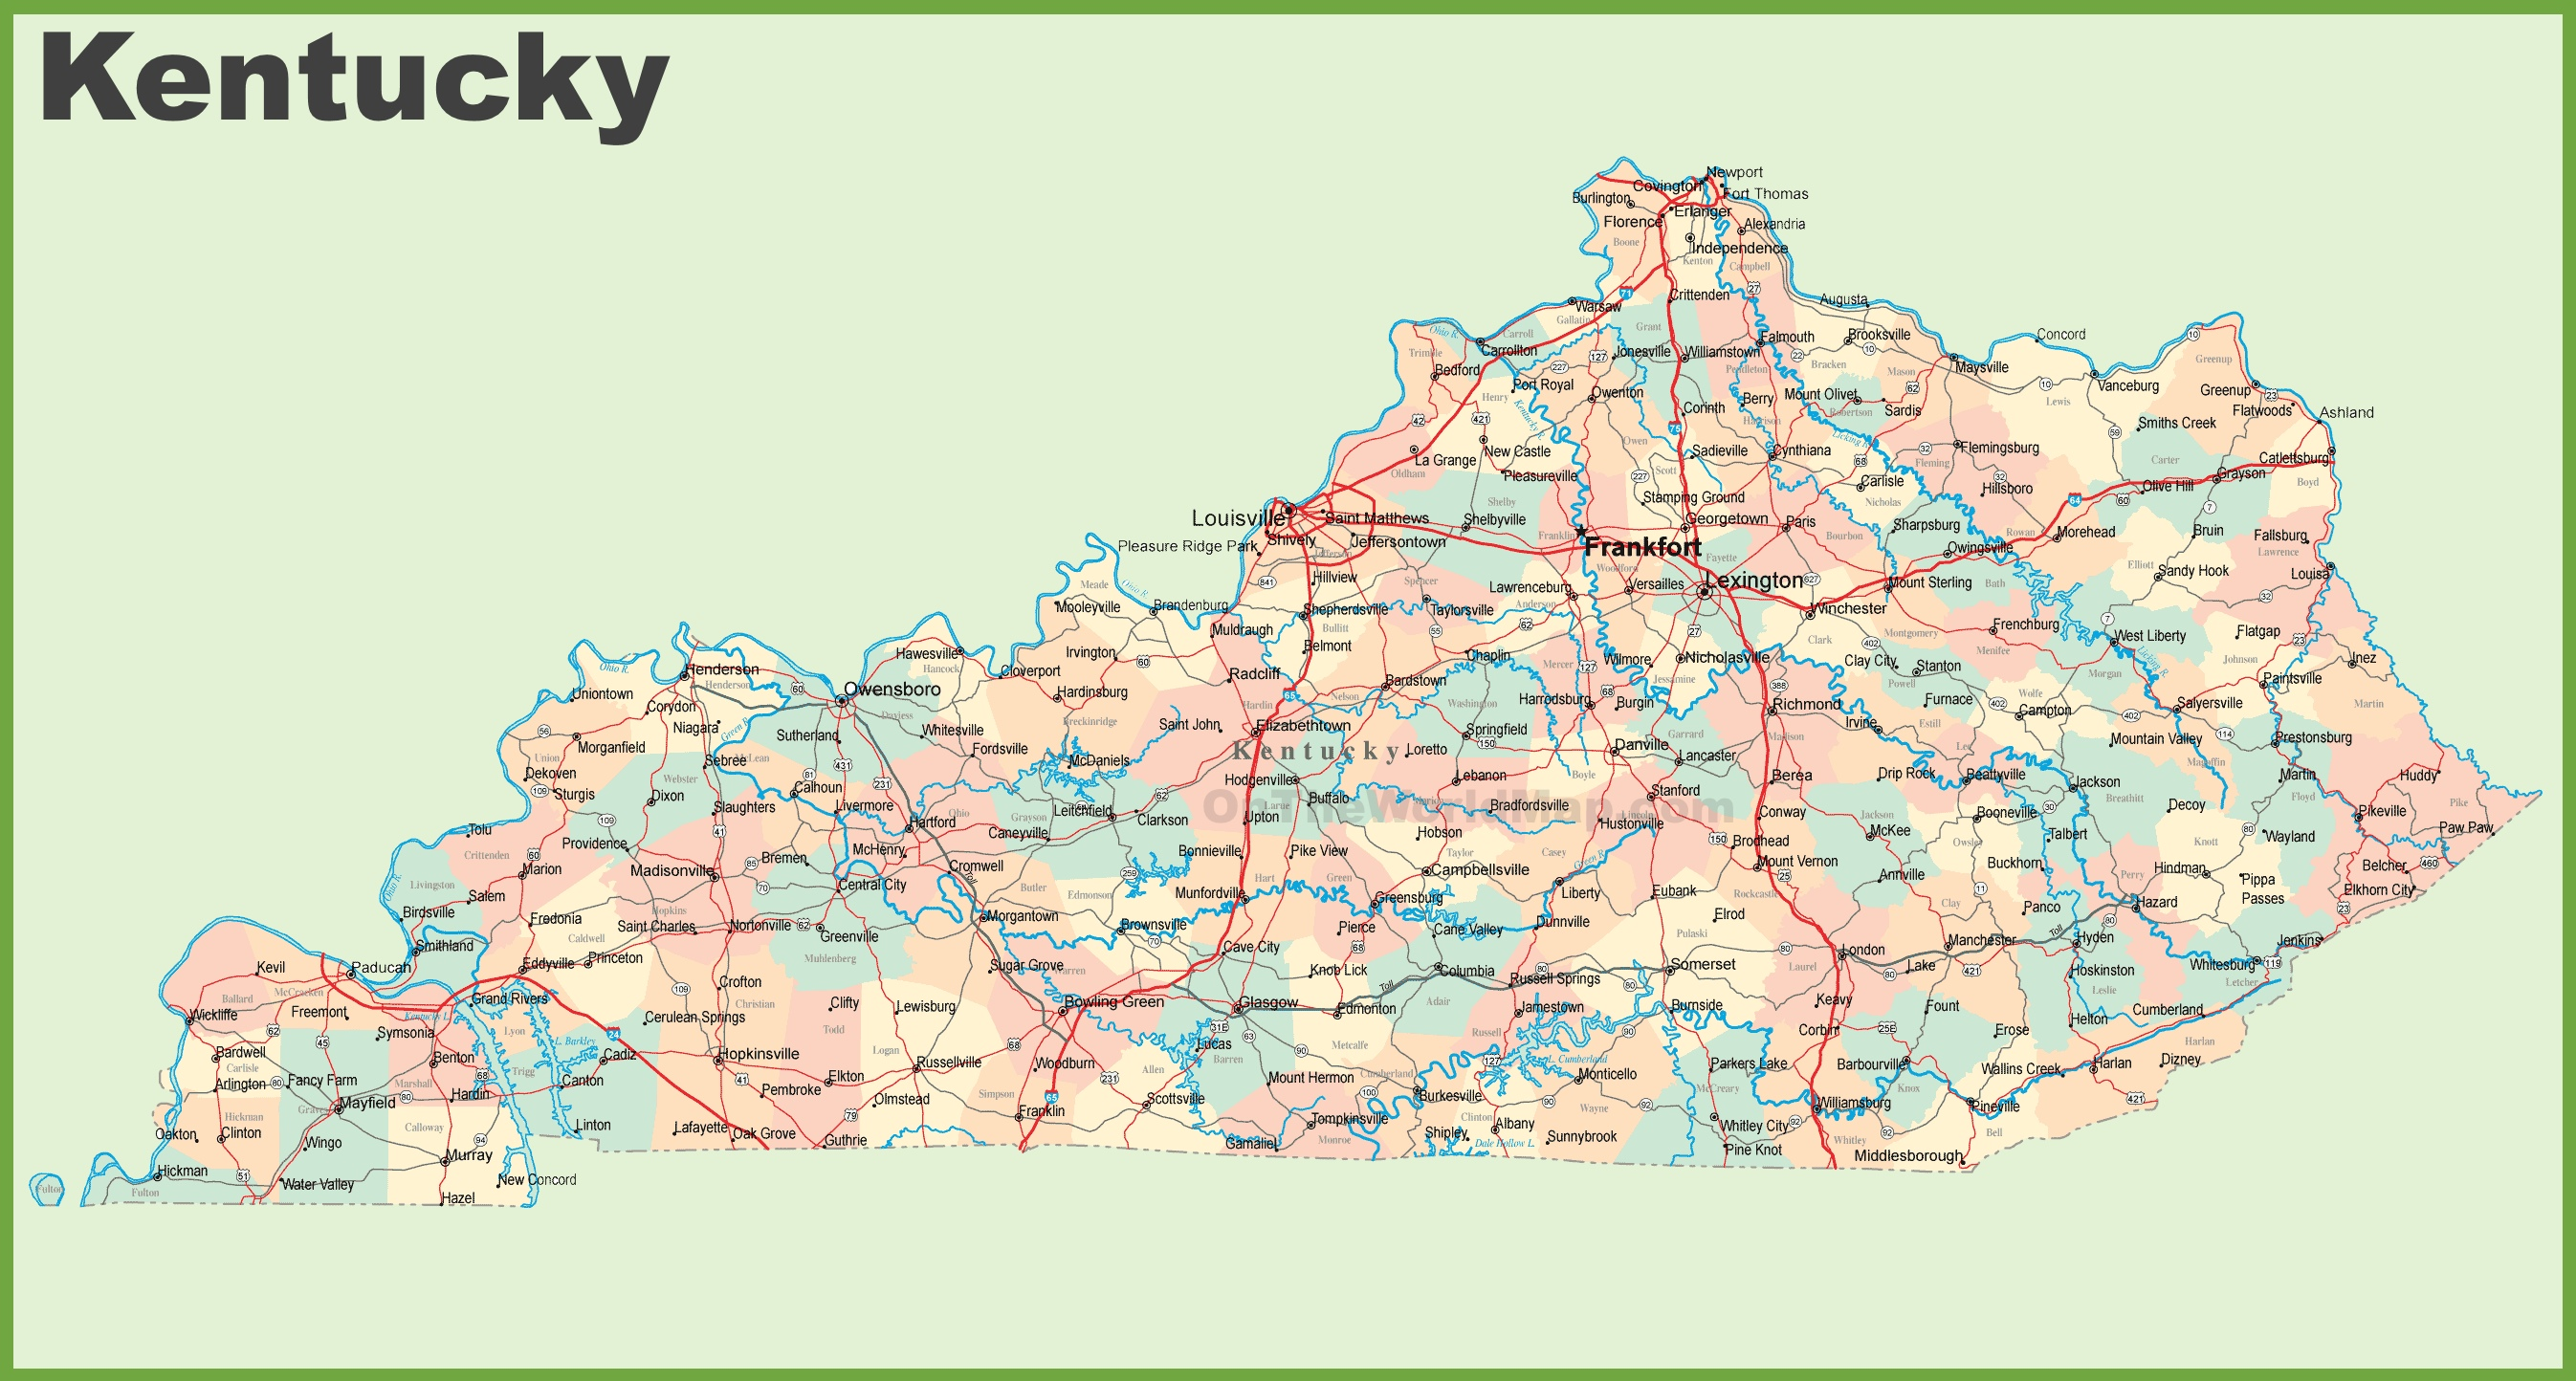 Kentucky Map With Cities Road map of Kentucky with cities